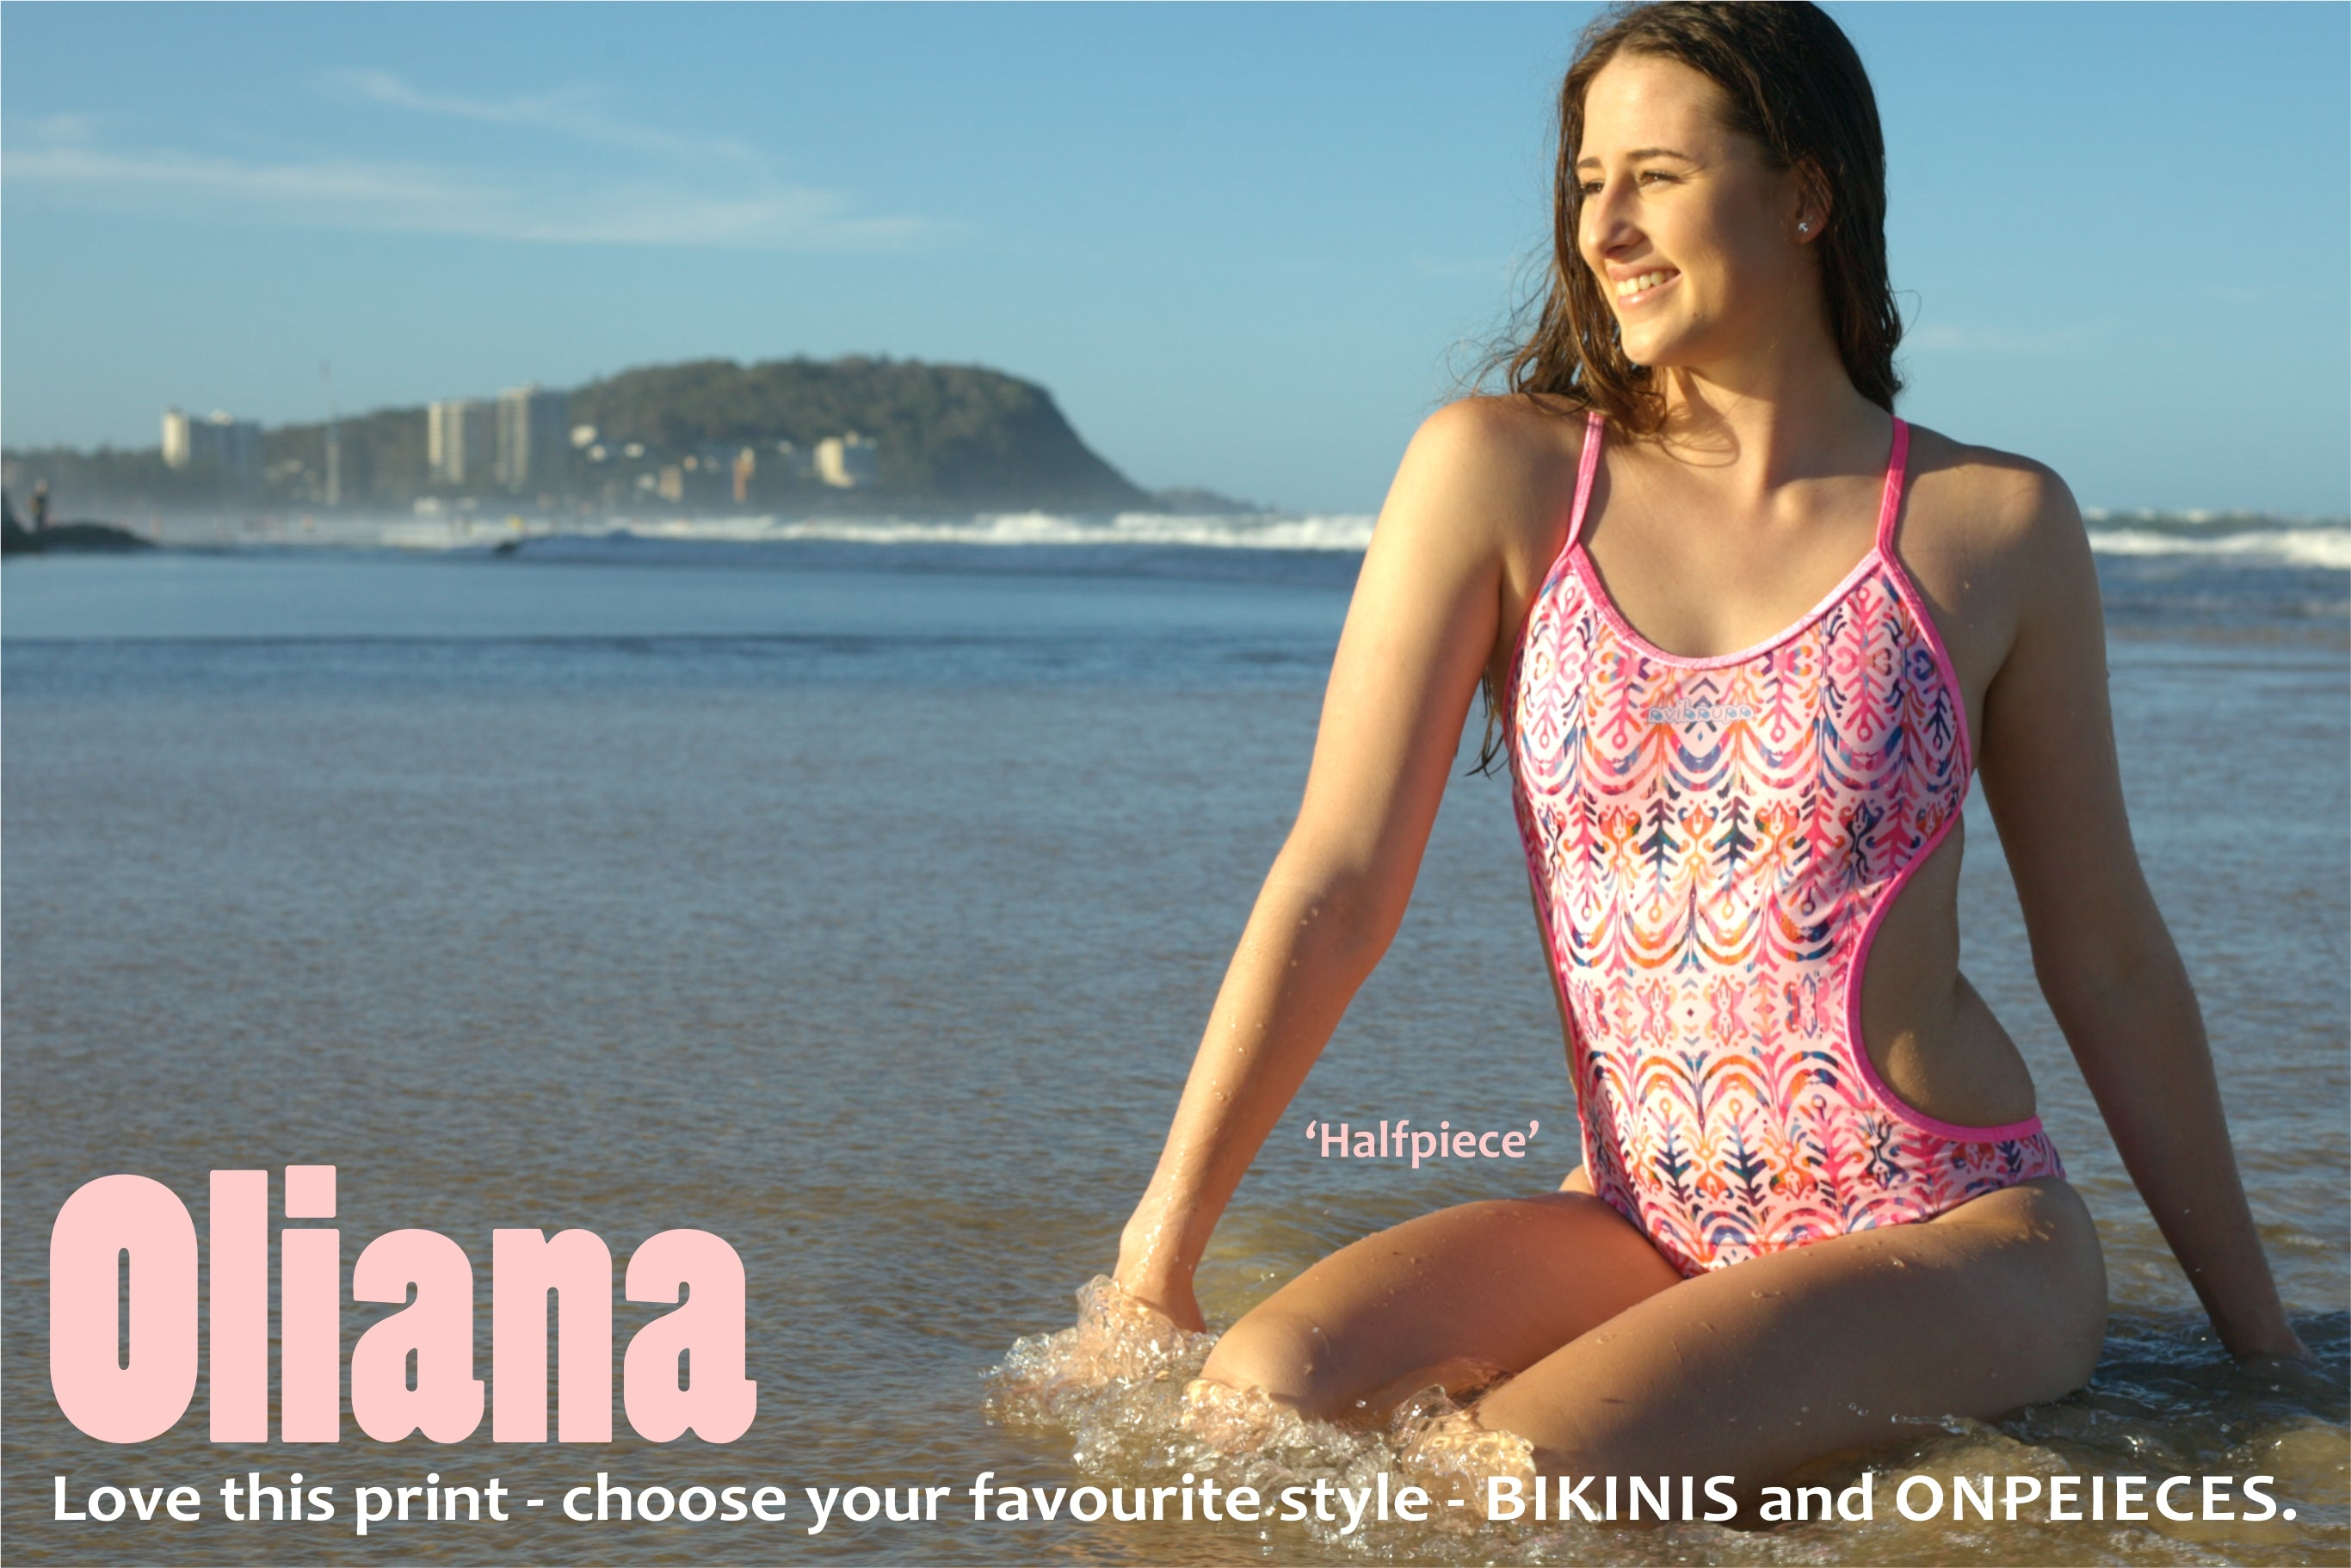 NEW! - Oliana - all styles in BIKINIS and ONEPIECES